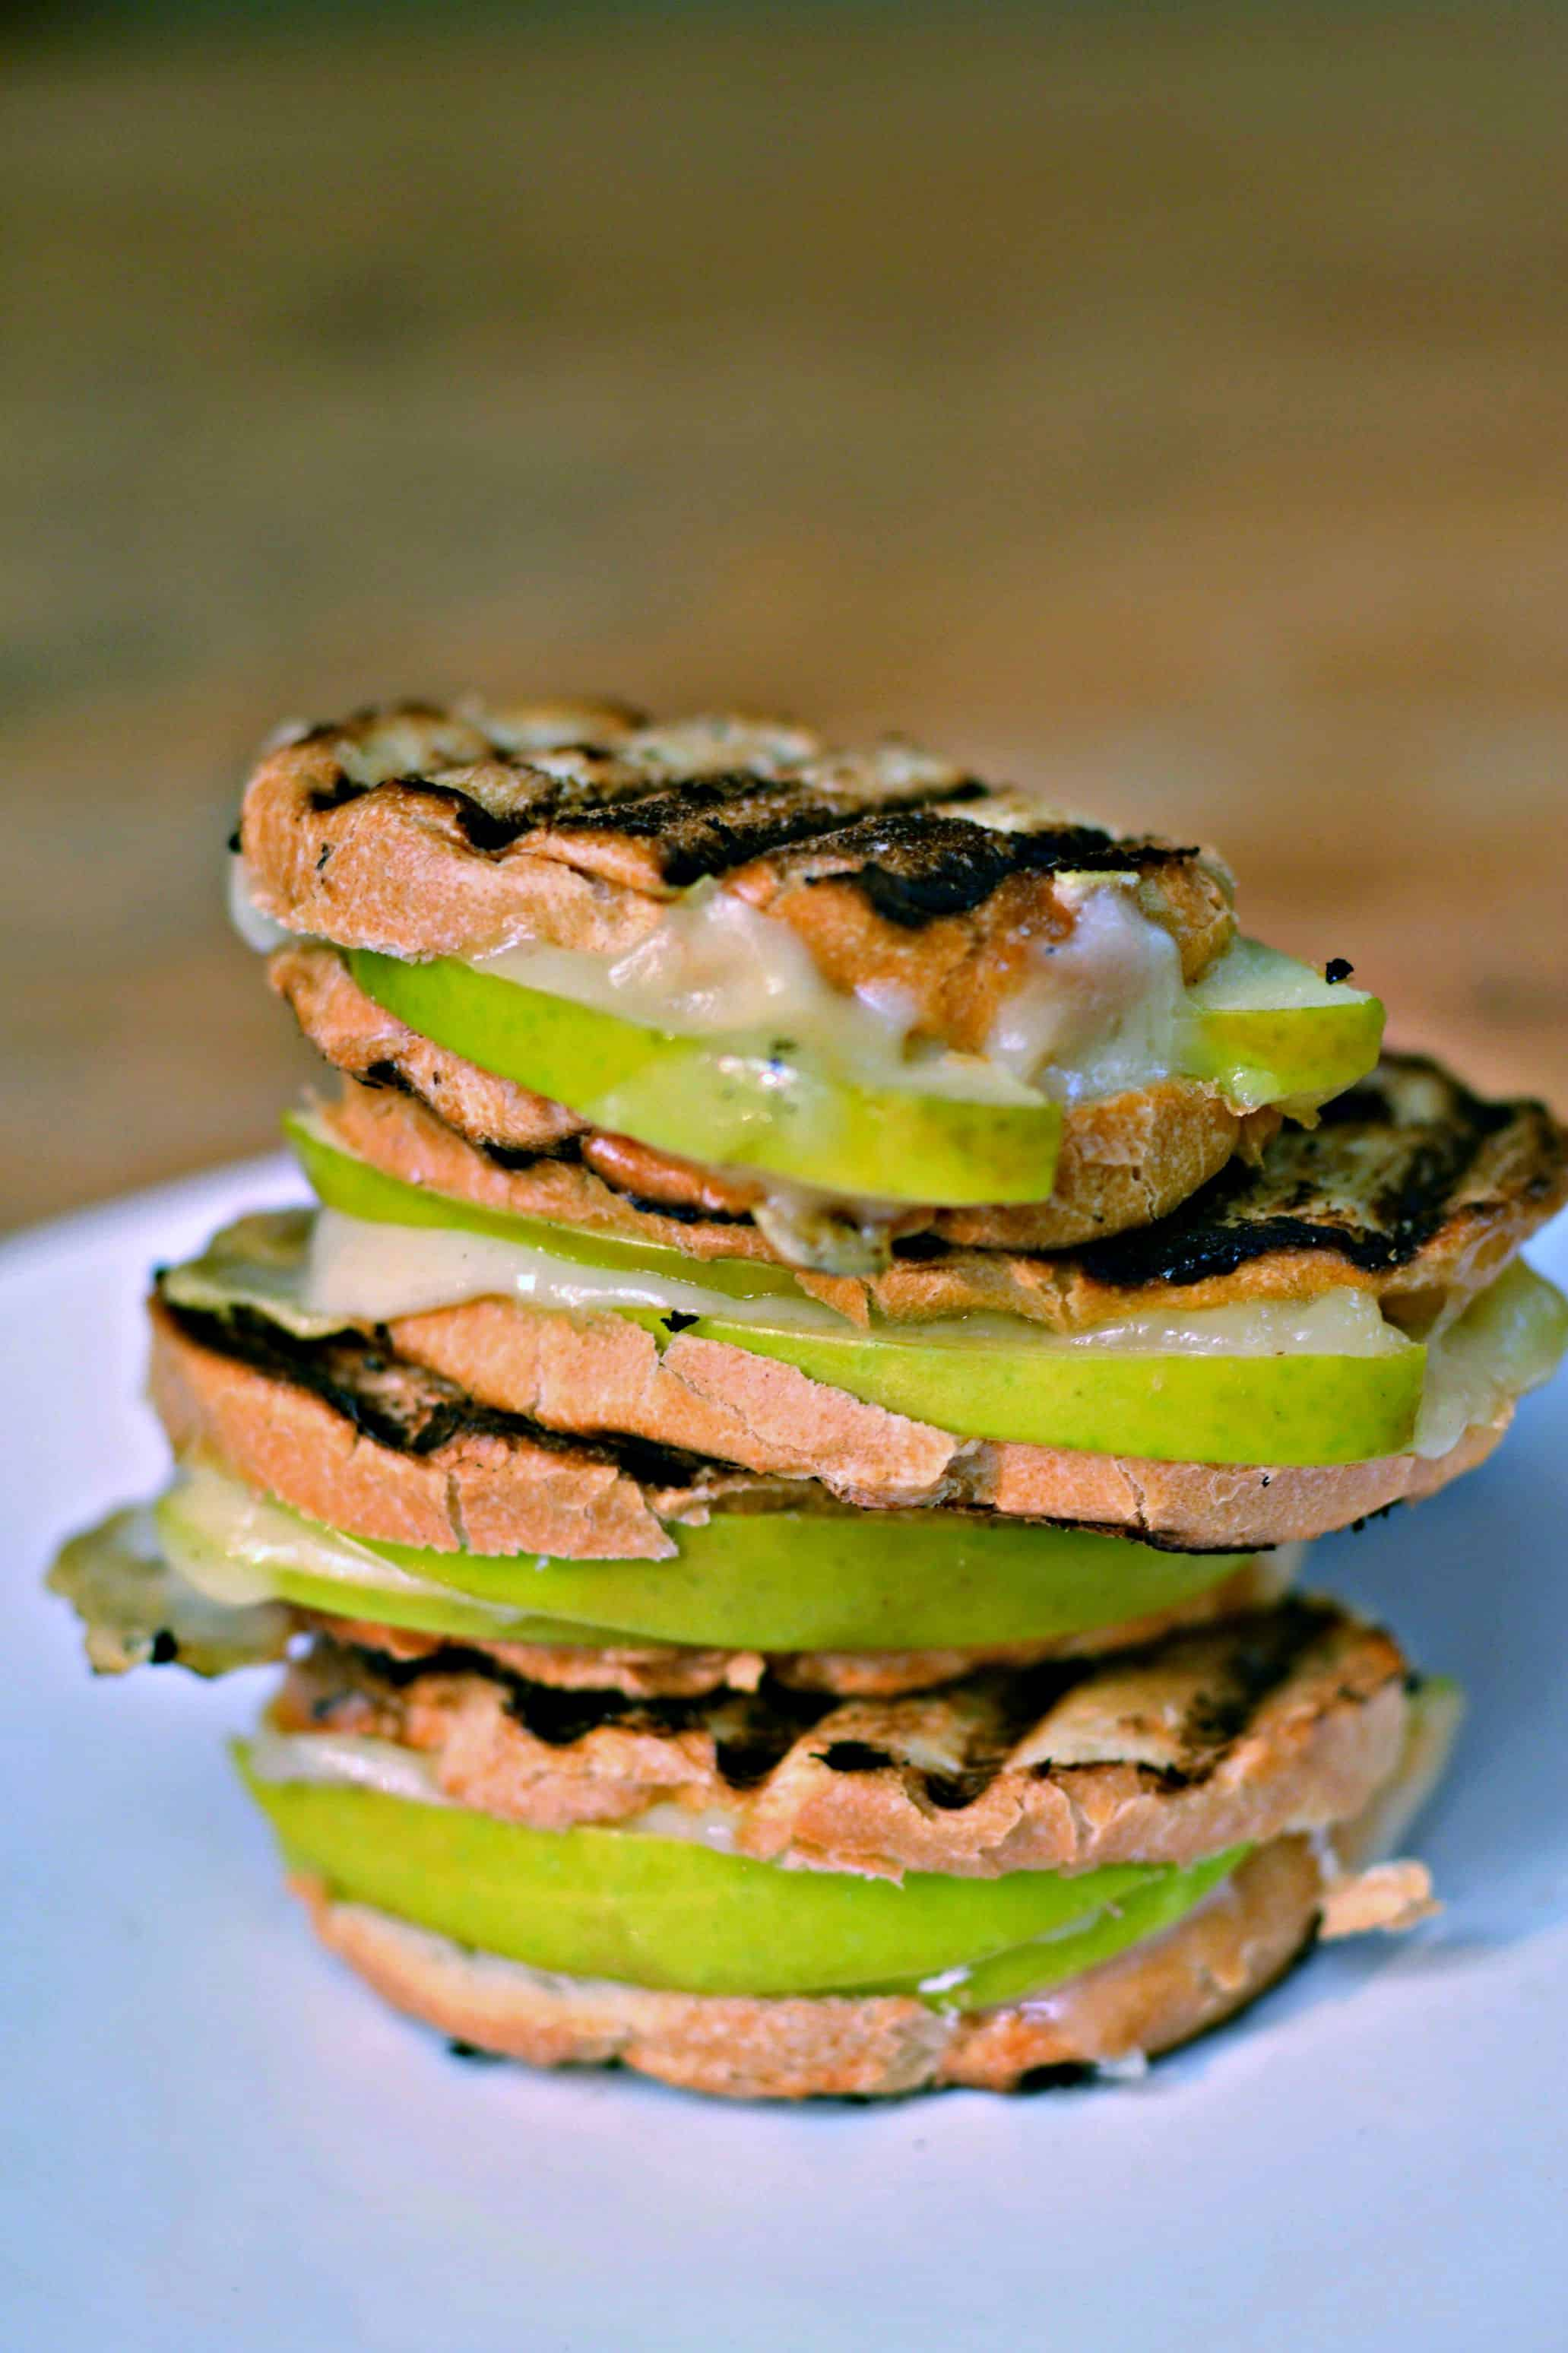 Looking for an easy apple appetizer? These mini apple swiss panini sandwiches are just right!